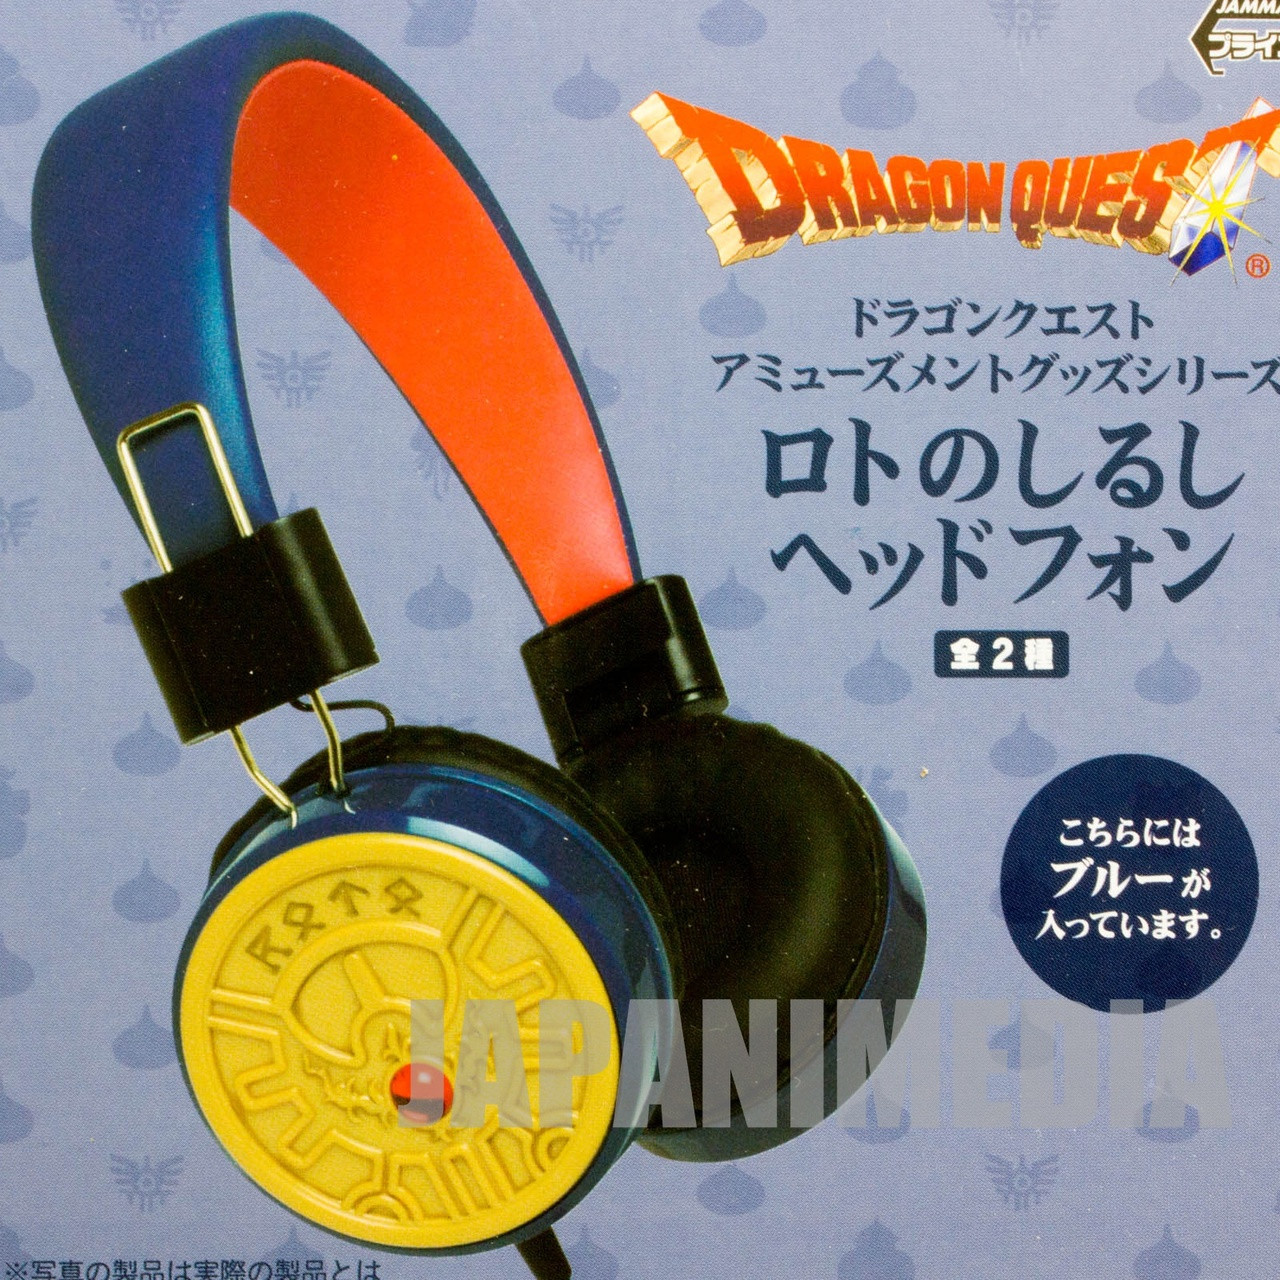 Dragon Quest Brave Roto Mark Headphone Square Enix JAPAN GAME